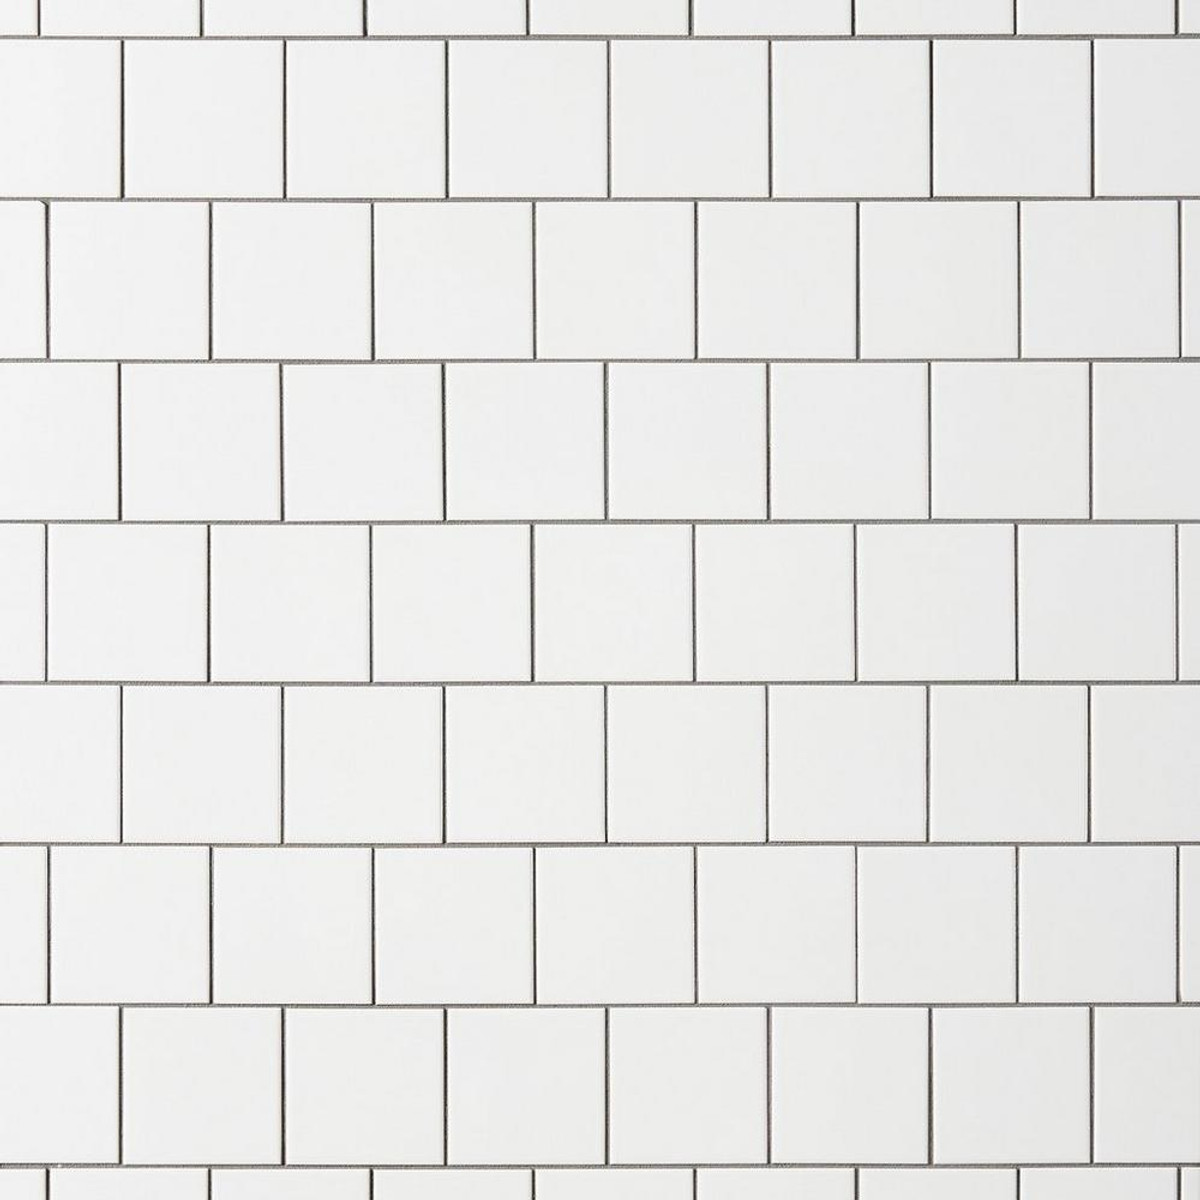 Amazing 12 Inch By 12 Inch Ceiling Tiles Huge 12 X 12 Ceramic Tile Regular 12X12 Ceiling Tiles 24 Ceramic Tile Young 3X9 Subway Tile Gray4 1 4 X 4 1 4 Ceramic Tile Ice White Matte 4x4 Ceramic Wall Tile   Portland Direct Tile \u0026 Marble